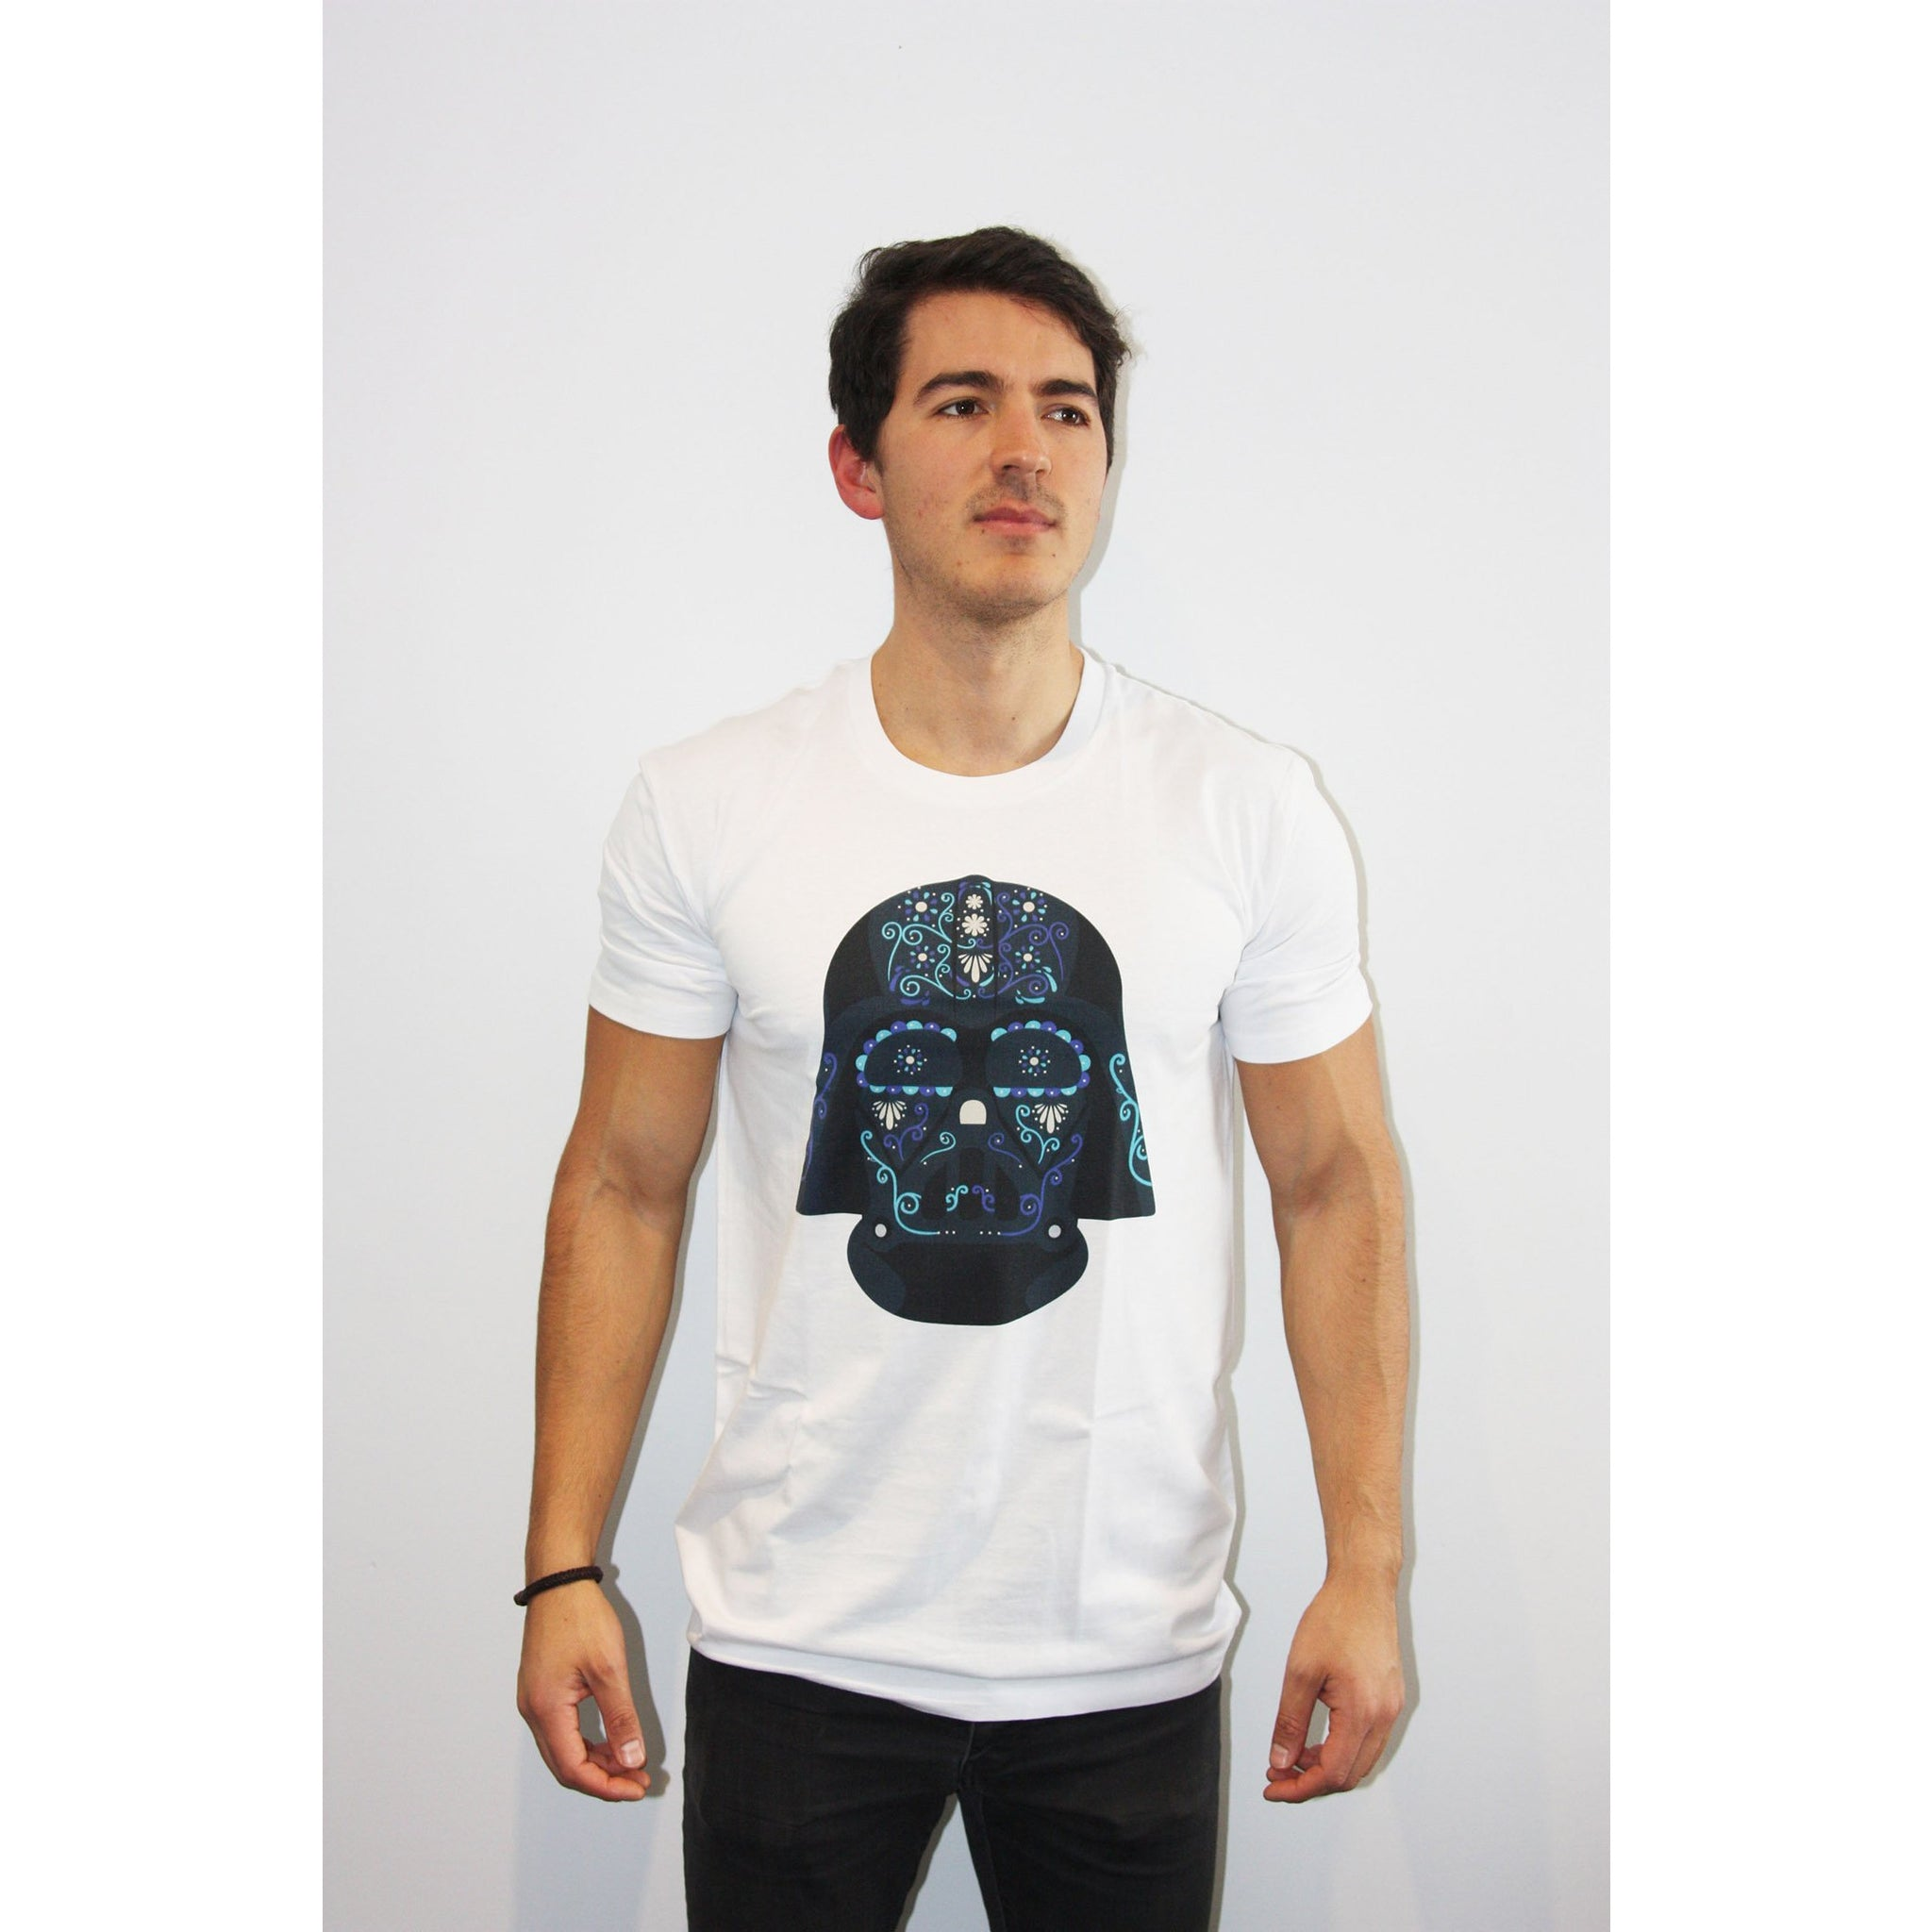 Darth Vader Day of the Dead T Shirt - Mexican Wrestling Masks